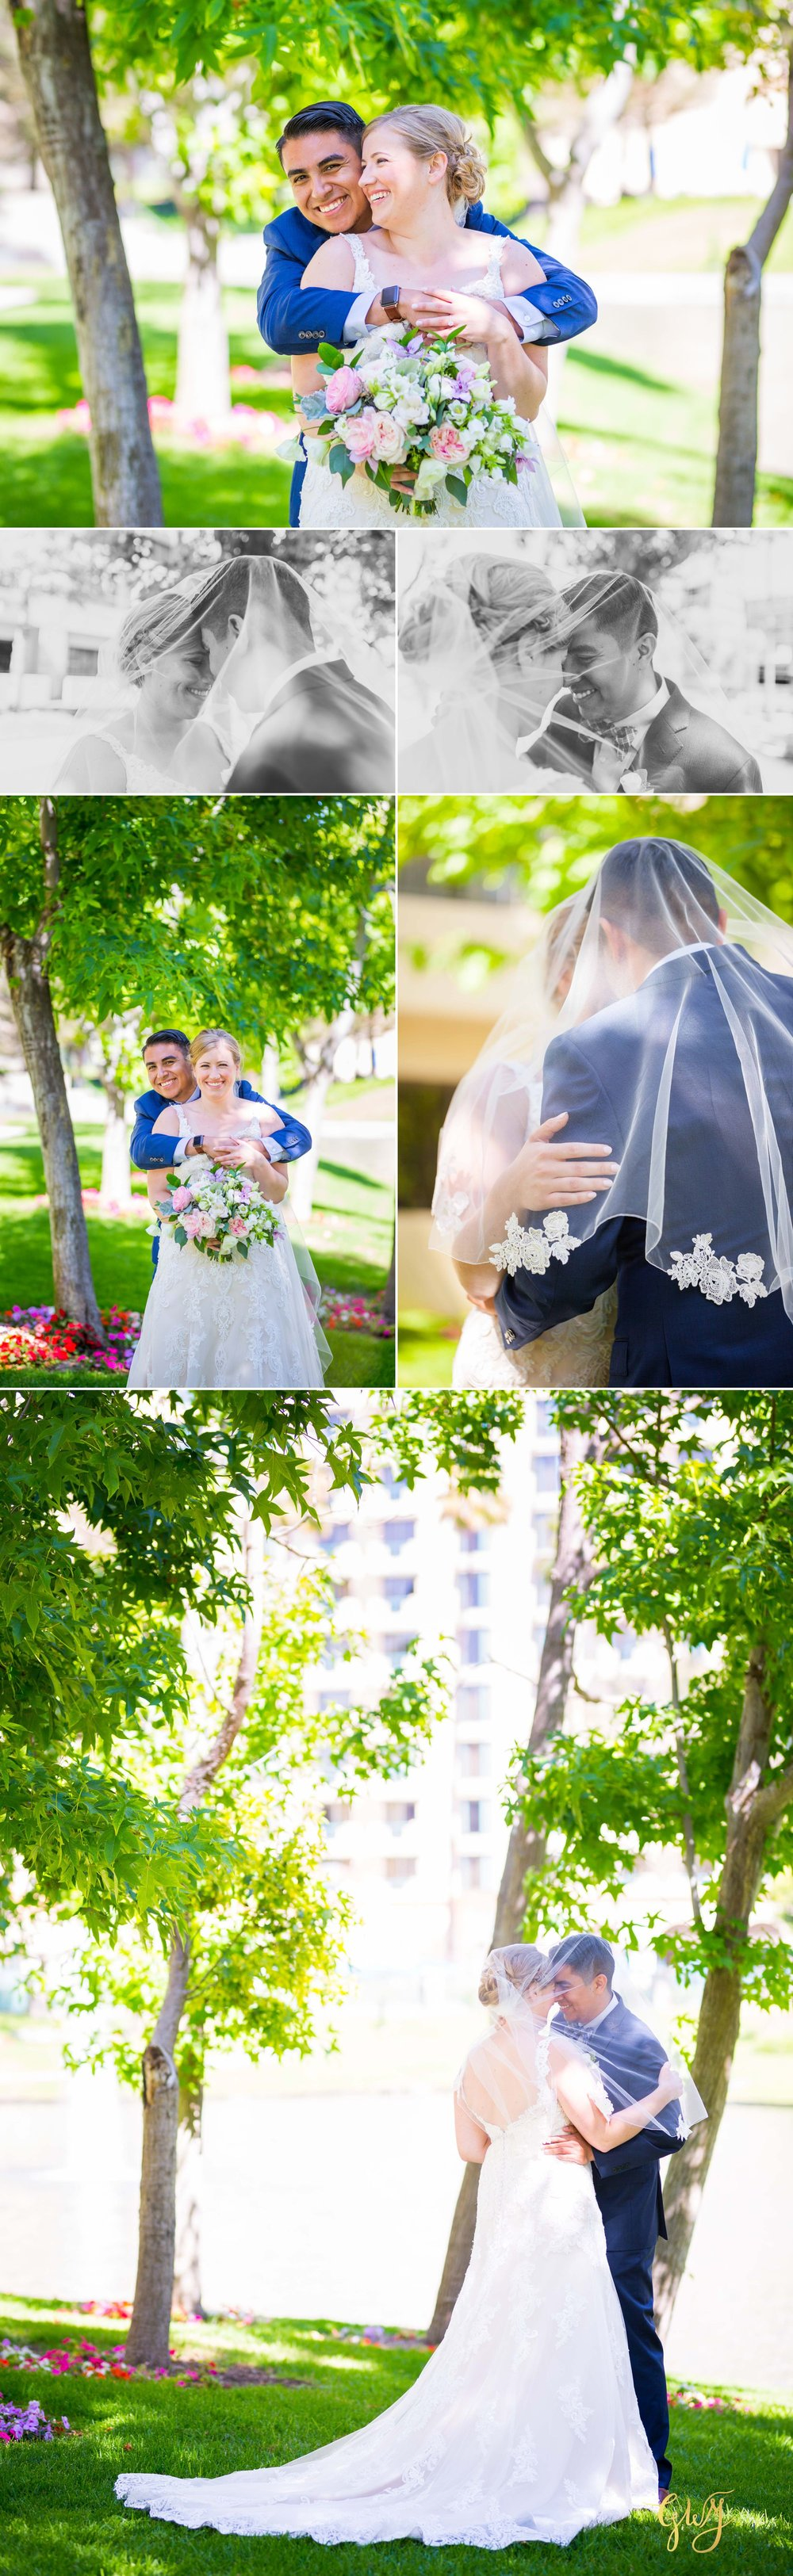 Javier + Kari Avenue of the Arts First Look Vintage Rose Wedding Ceremony Reception by Glass Woods Media 12.jpg